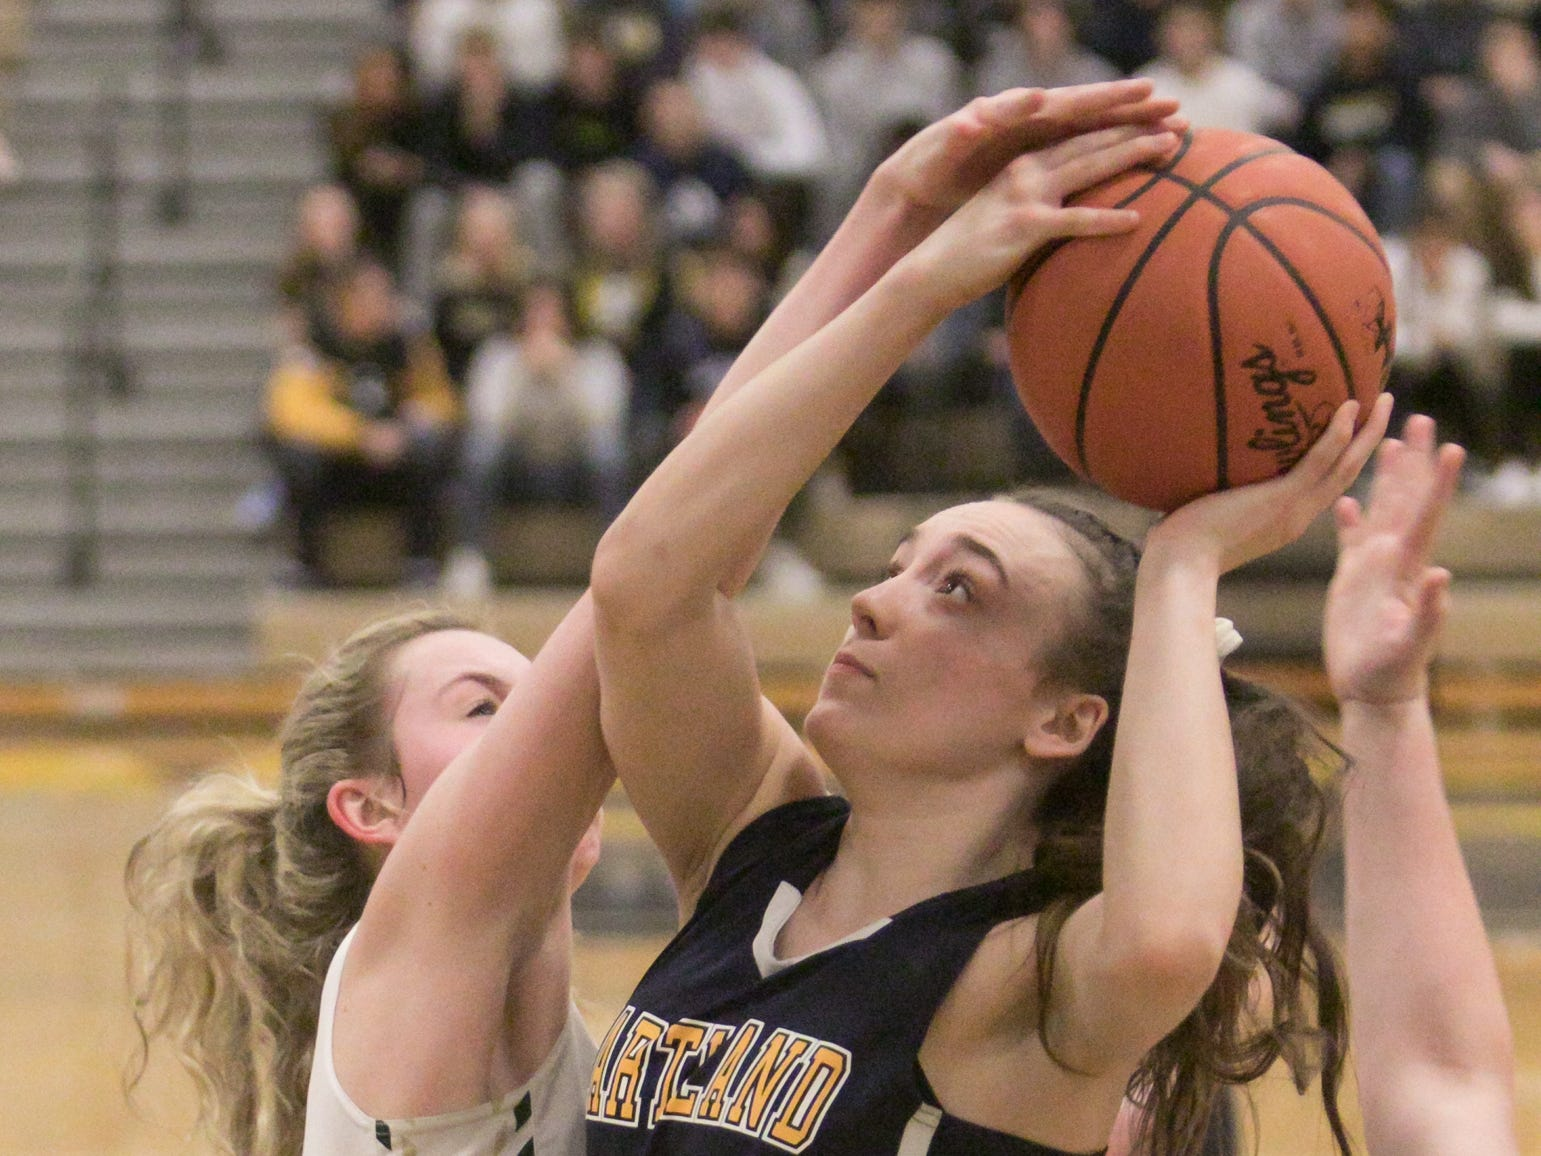 Madi Moyer of Hartland is fouled in the second period of the home championship game against Howell Friday, March 8, 2019.